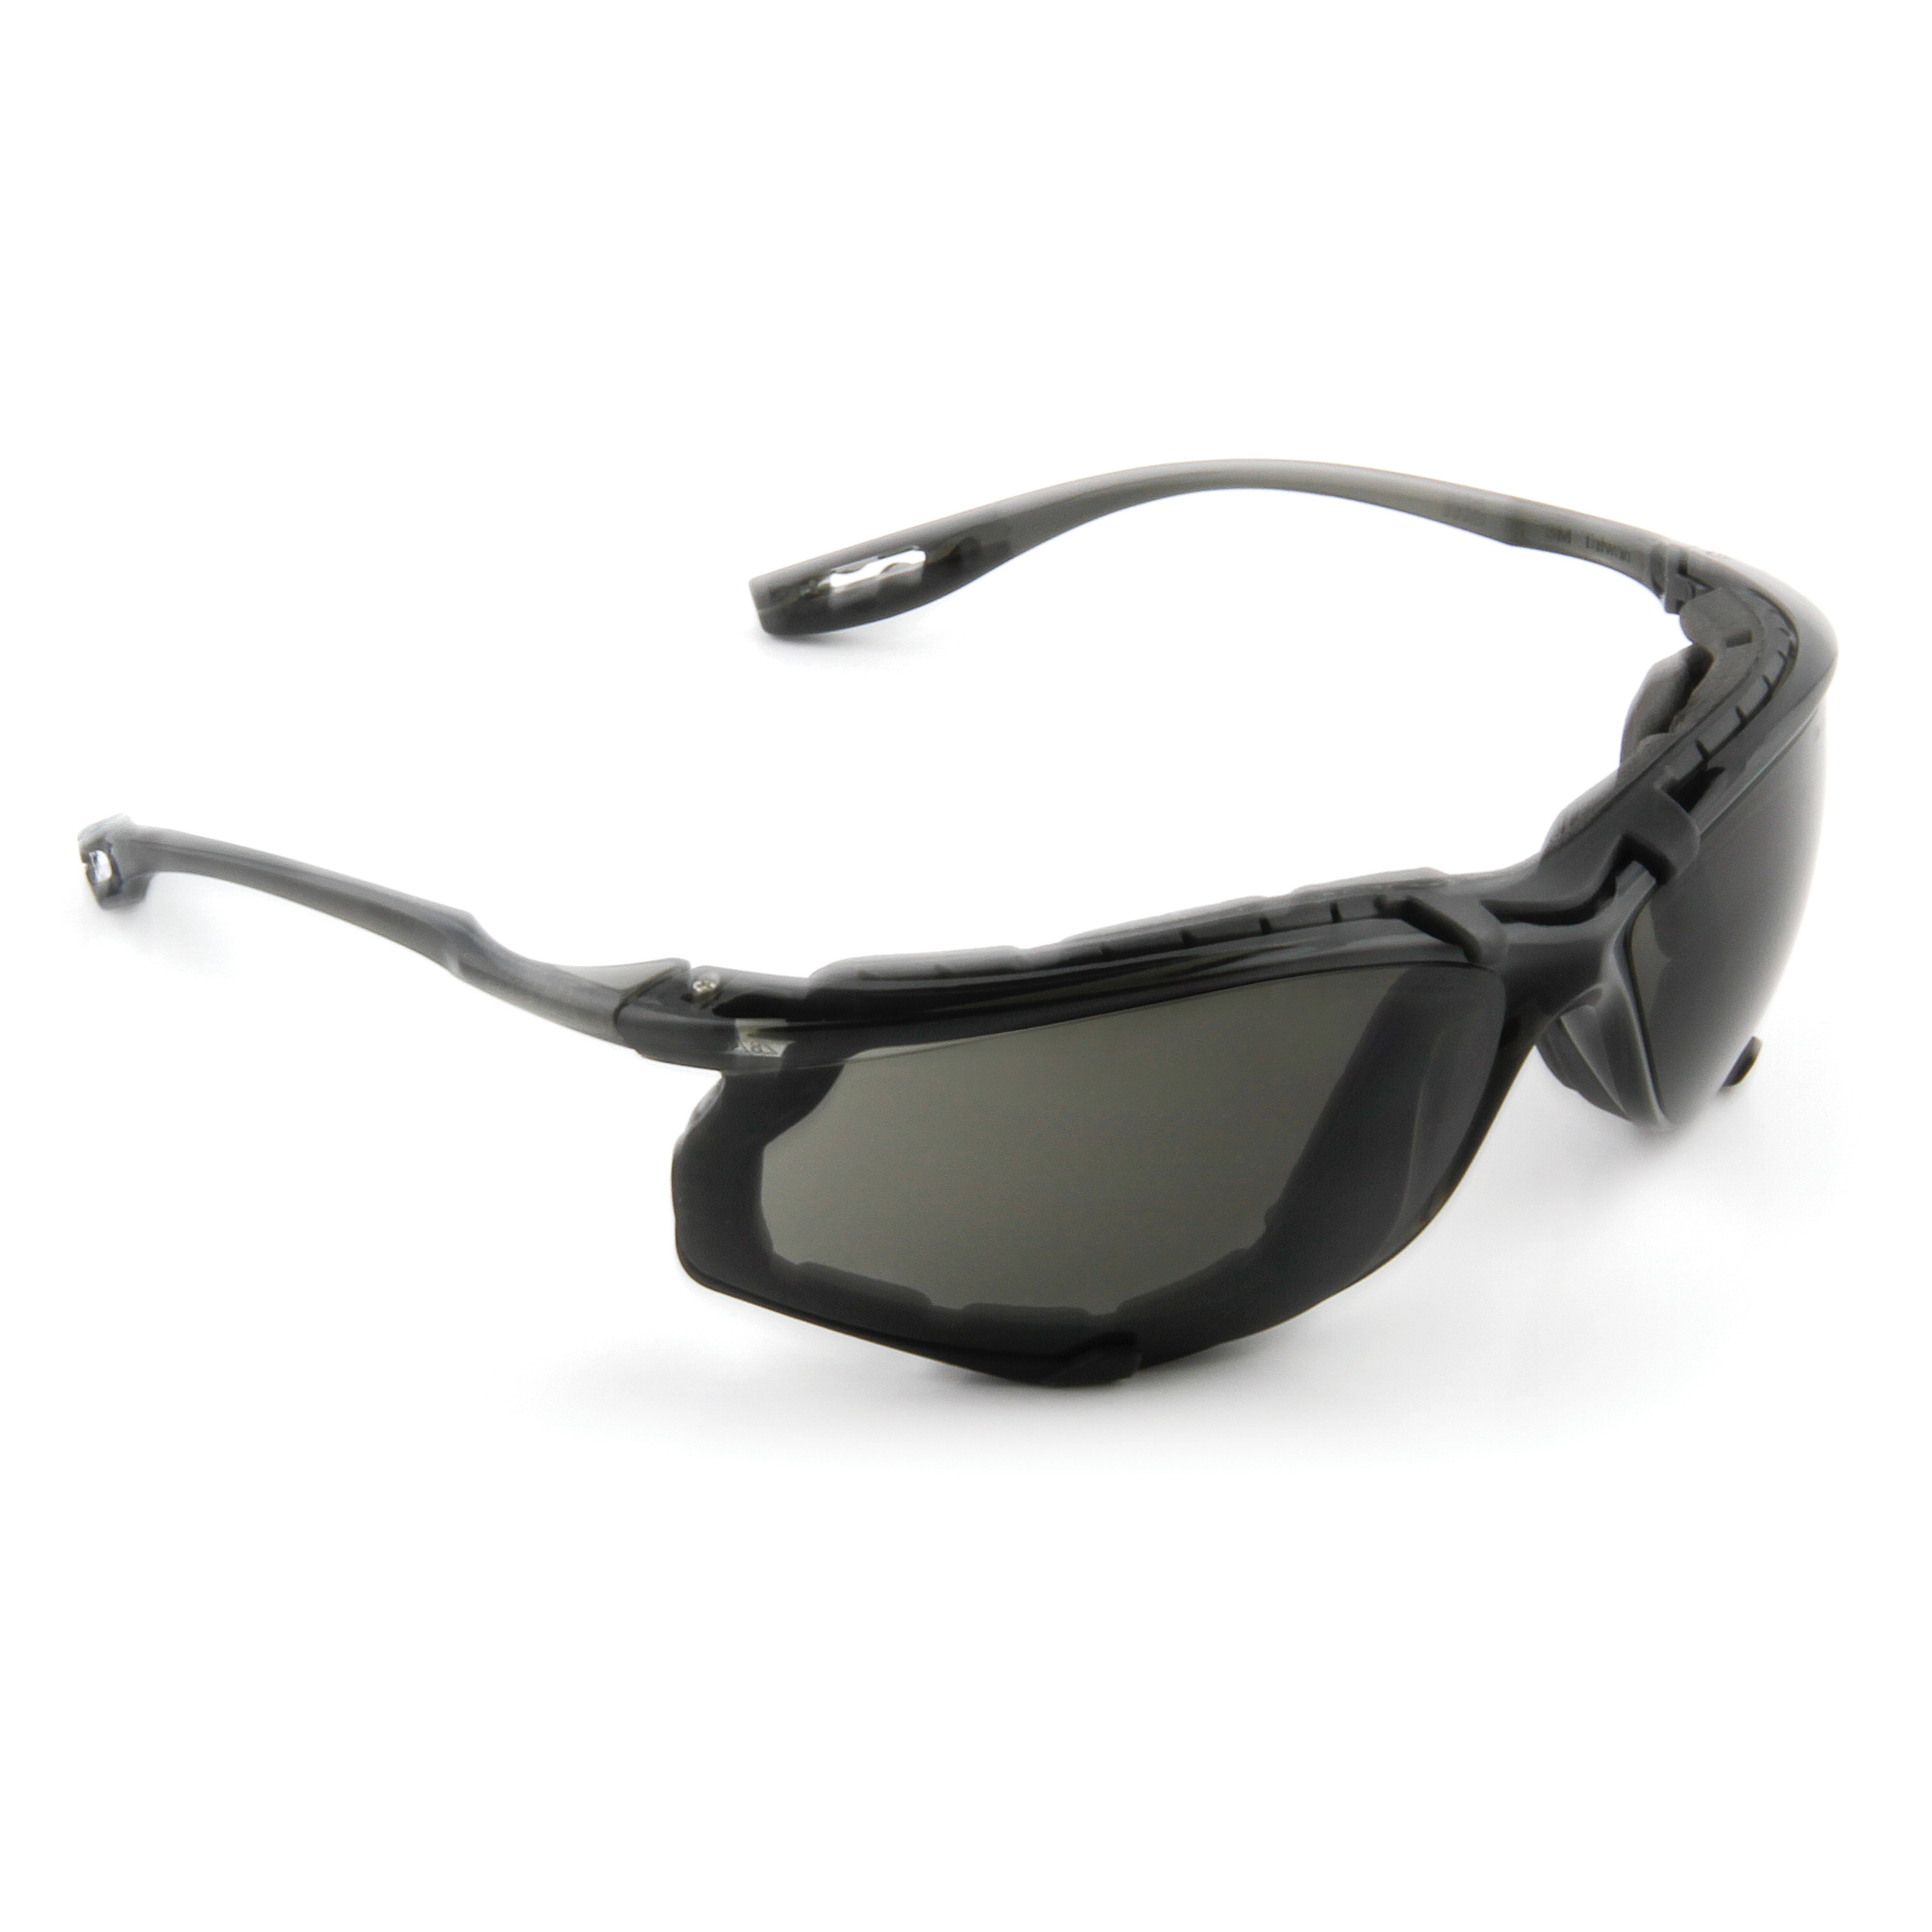 3M™ Virtua™ 078371-11873 11873-00000-20 Economy Protective Eyewear With Foam Gasket, Anti-Fog Gray Lens, Frameless/Wraparound Gray Plastic Frame, Polycarbonate Lens, Specifications Met: ANSI Z87.1-2015, CSA Z94.3